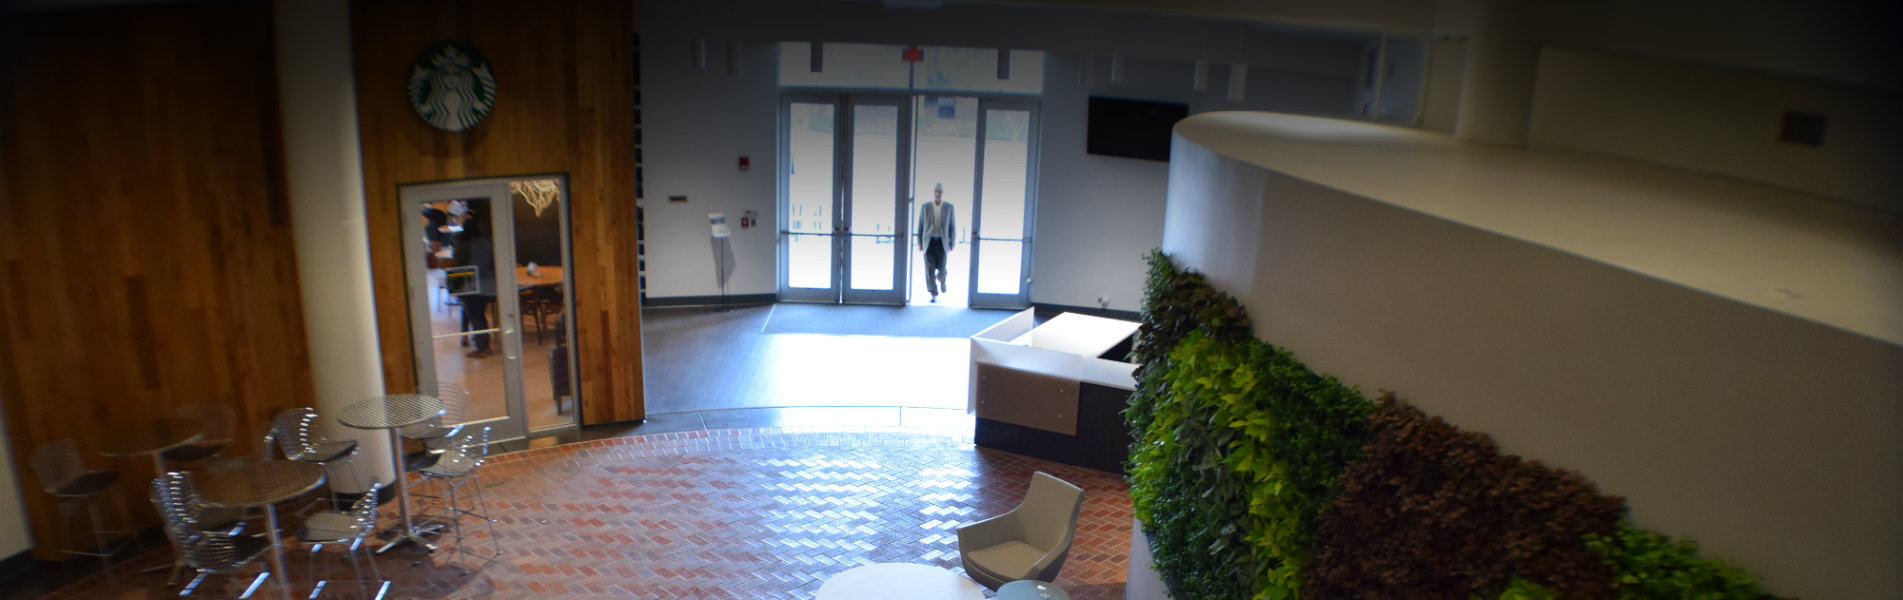 Interior Lobby Entrance of TCC Center for Innovation